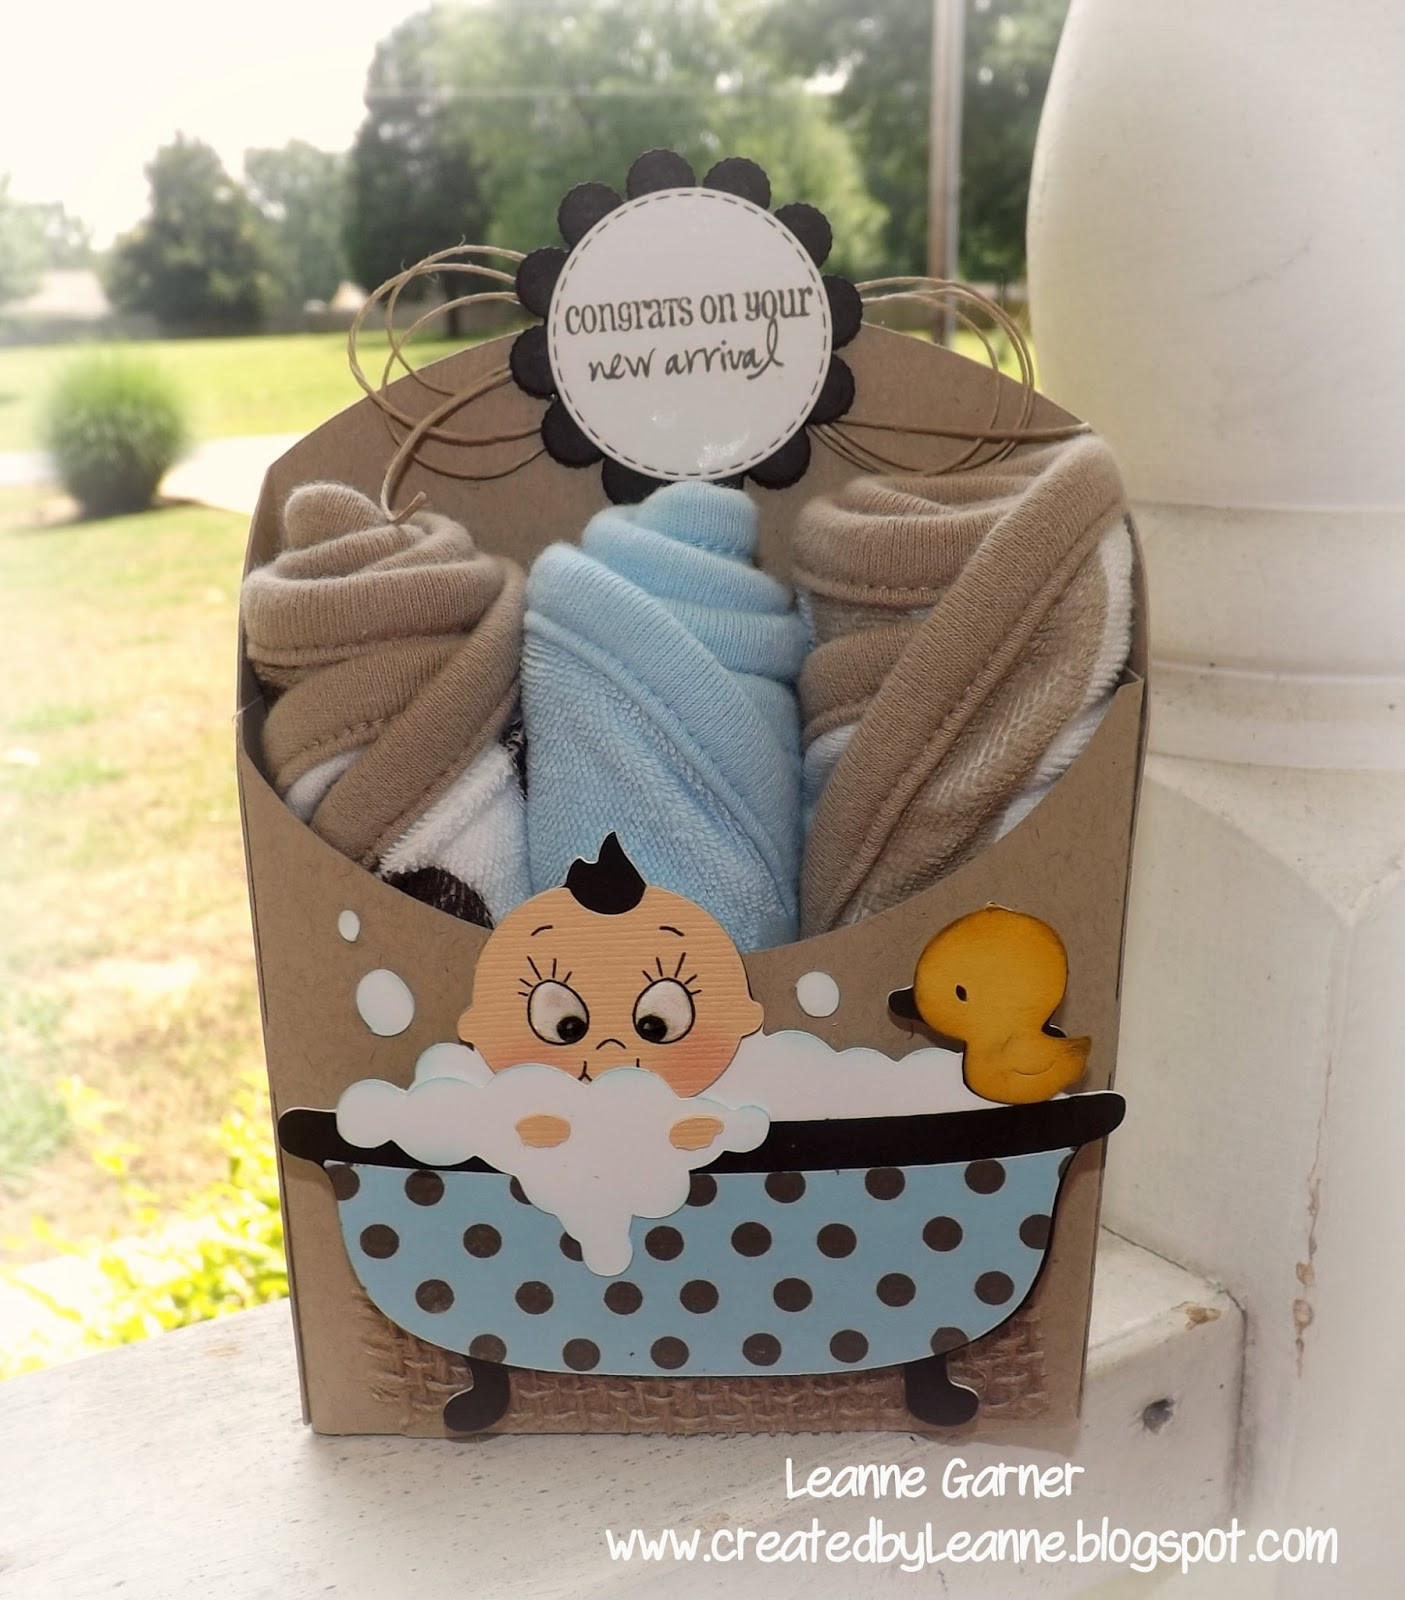 Best ideas about Cute Baby Boy Gift Ideas . Save or Pin Obsessed with Scrapbooking See the Cutest Baby Shower Now.